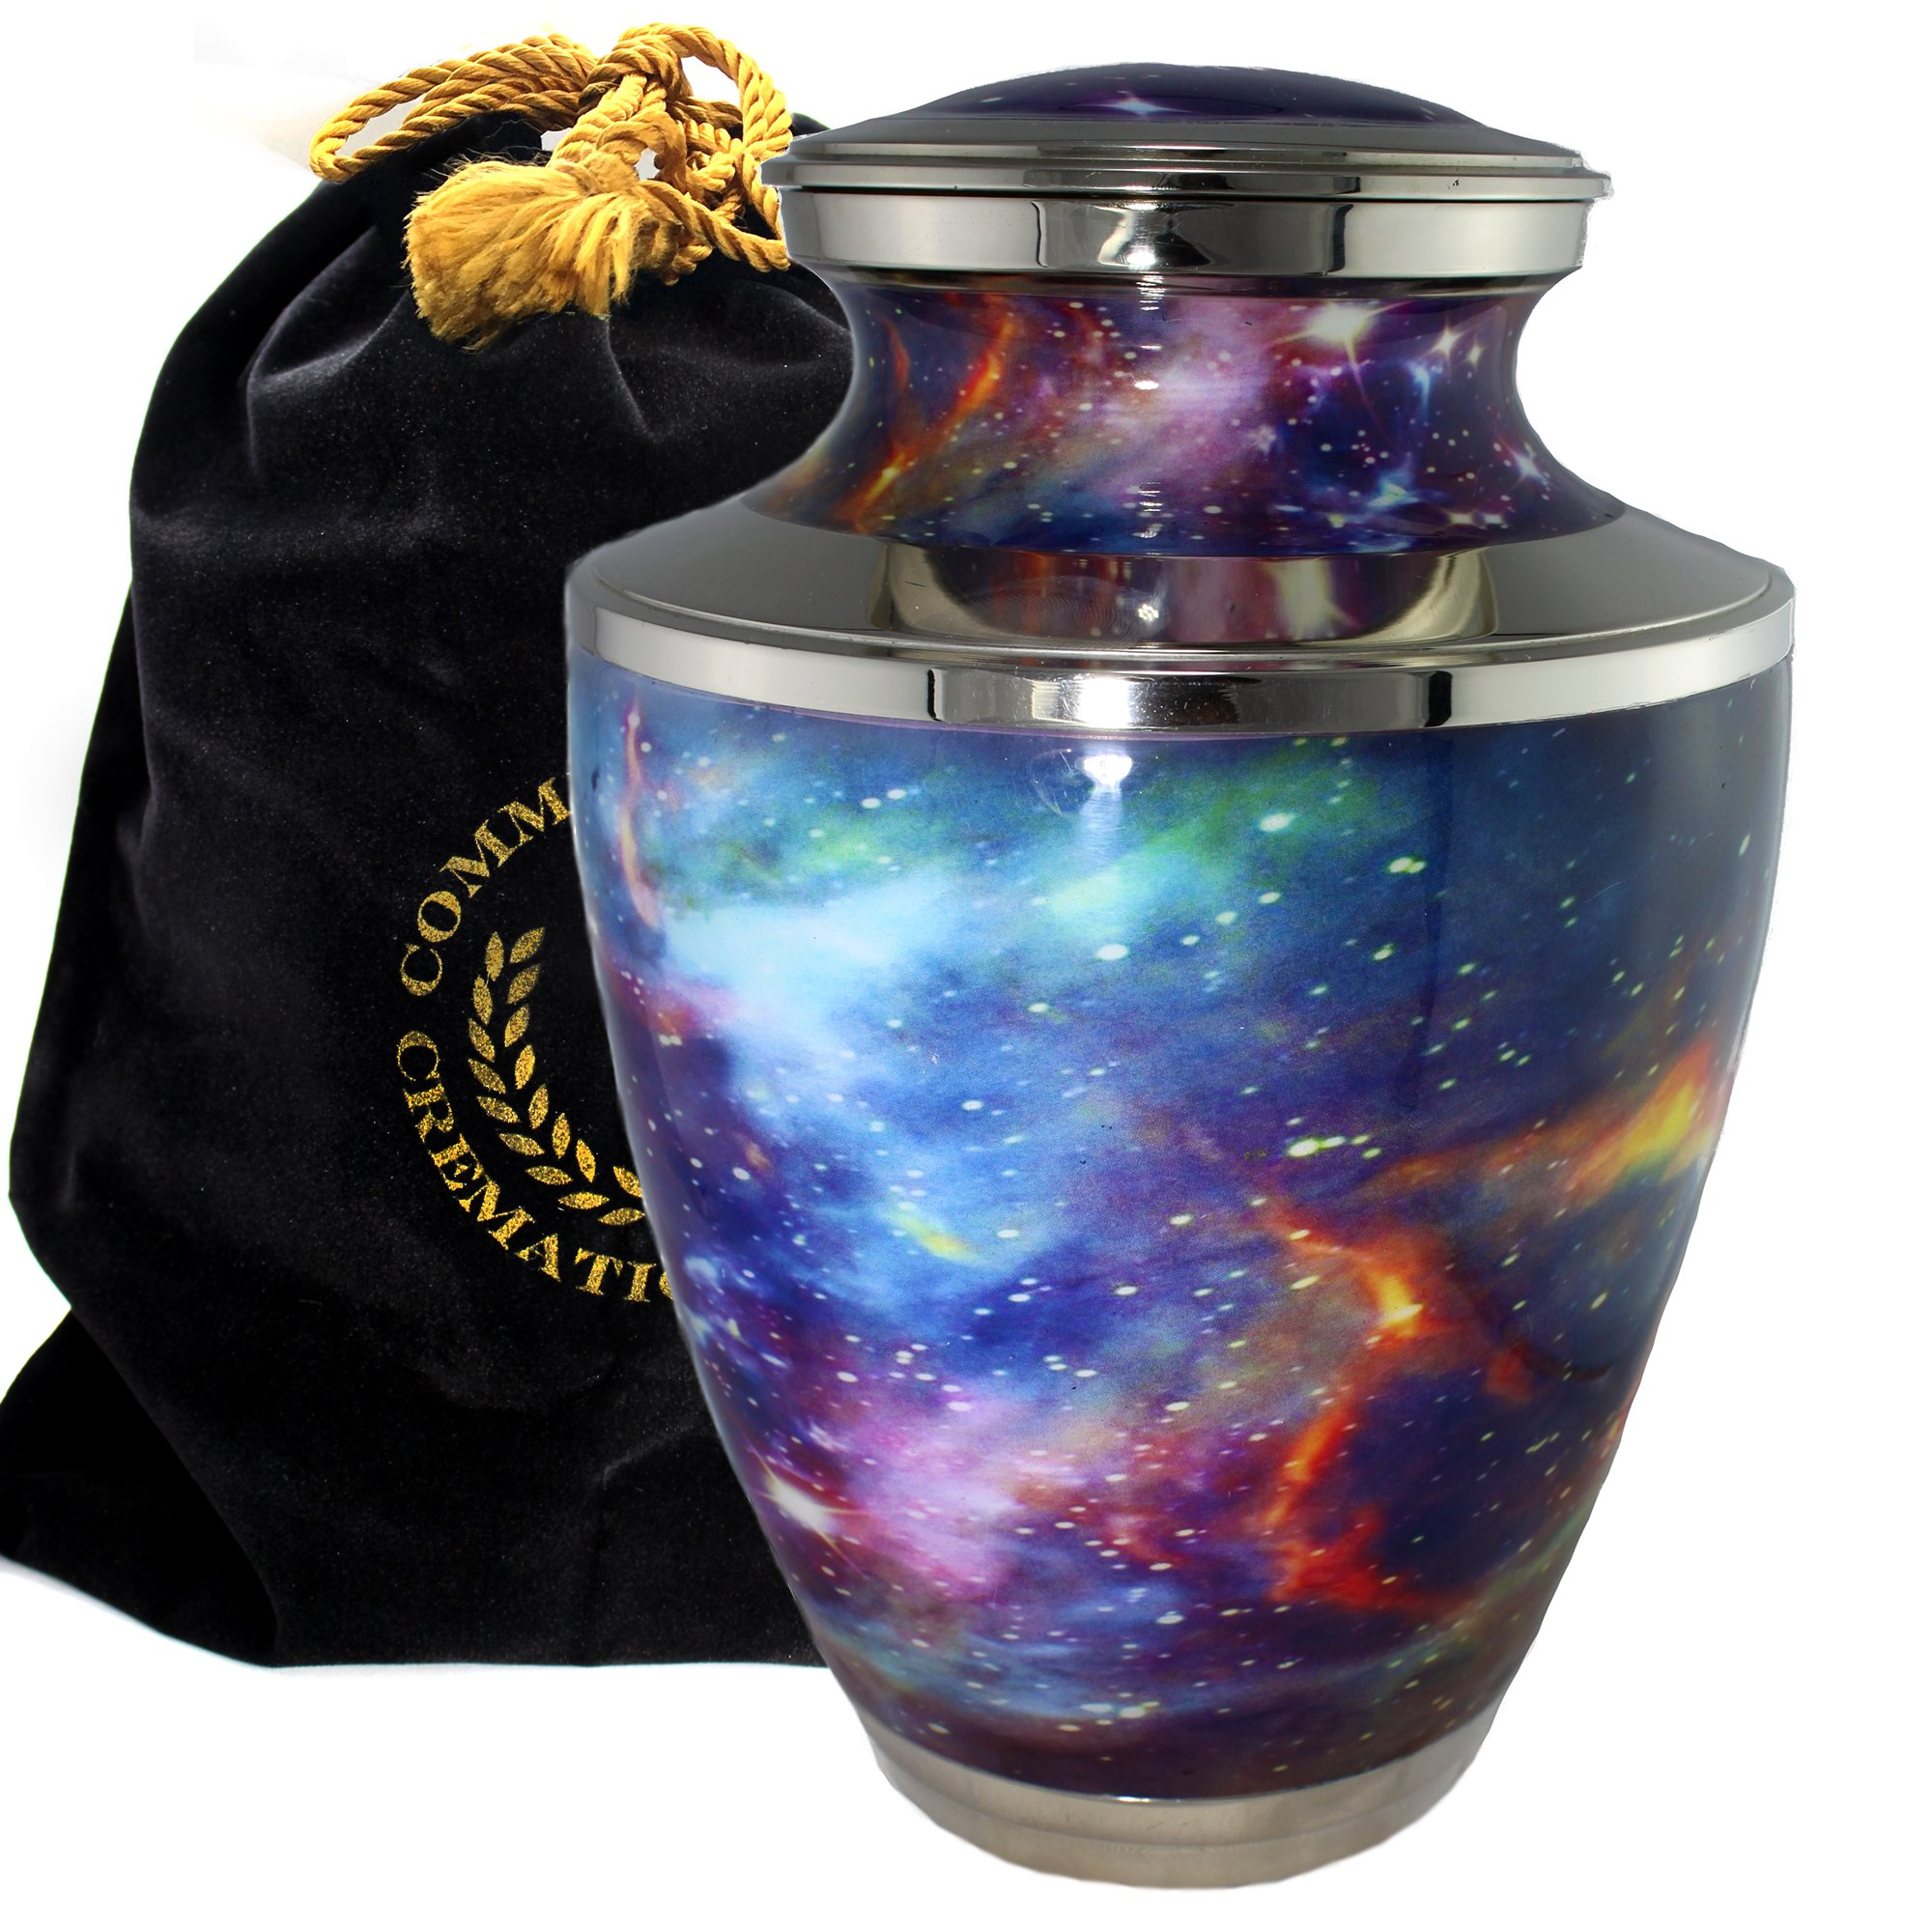 Cosmic Universe Galaxy Burial or Funeral Adult Cremation Urn for Human Ashes - Large, Adult by Commemorative Cremation Urns